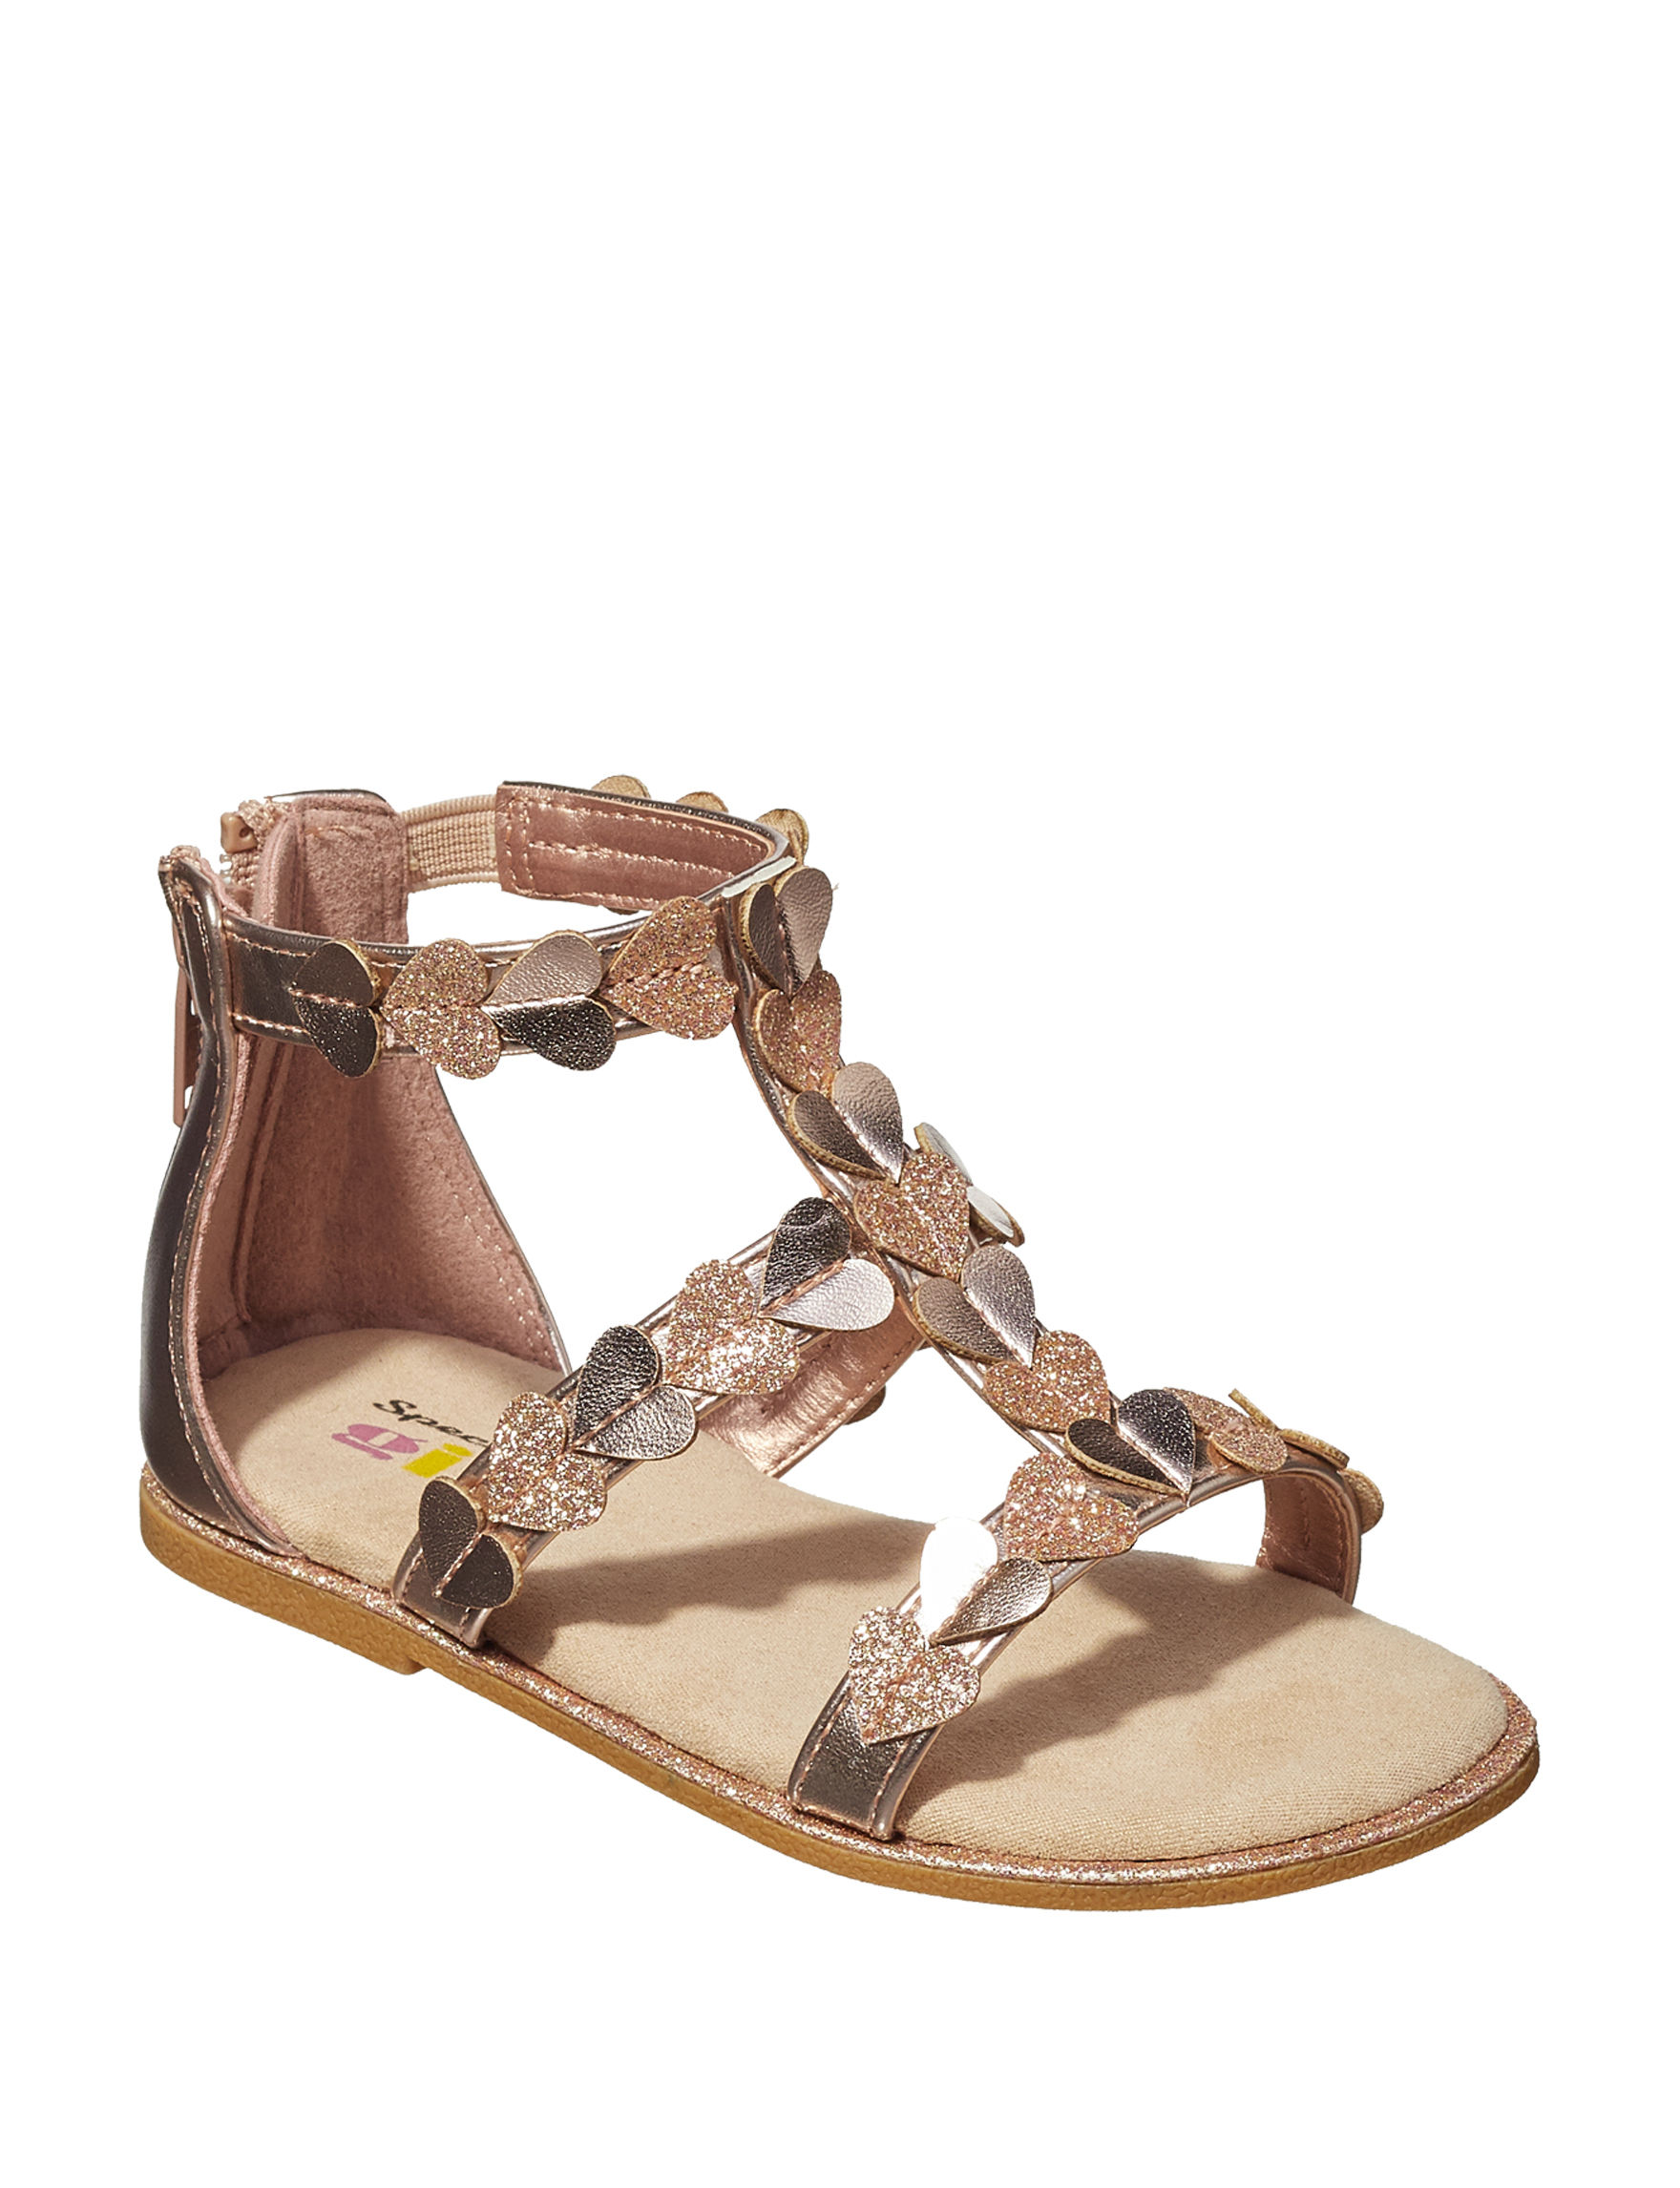 Specialty Girl Rose Gold Flat Sandals